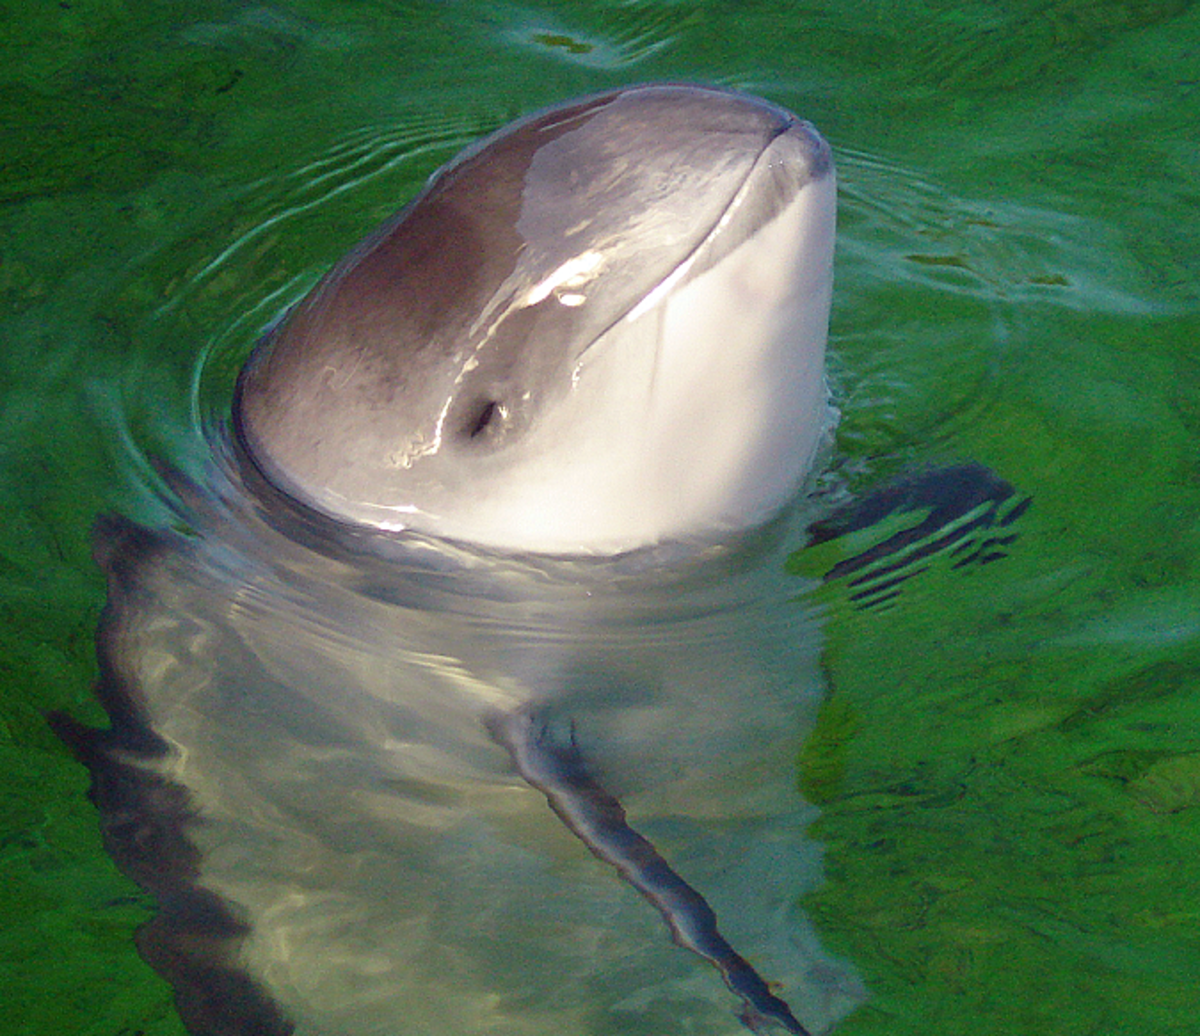 The Endangered Vaquita and the Harbour Porpoise